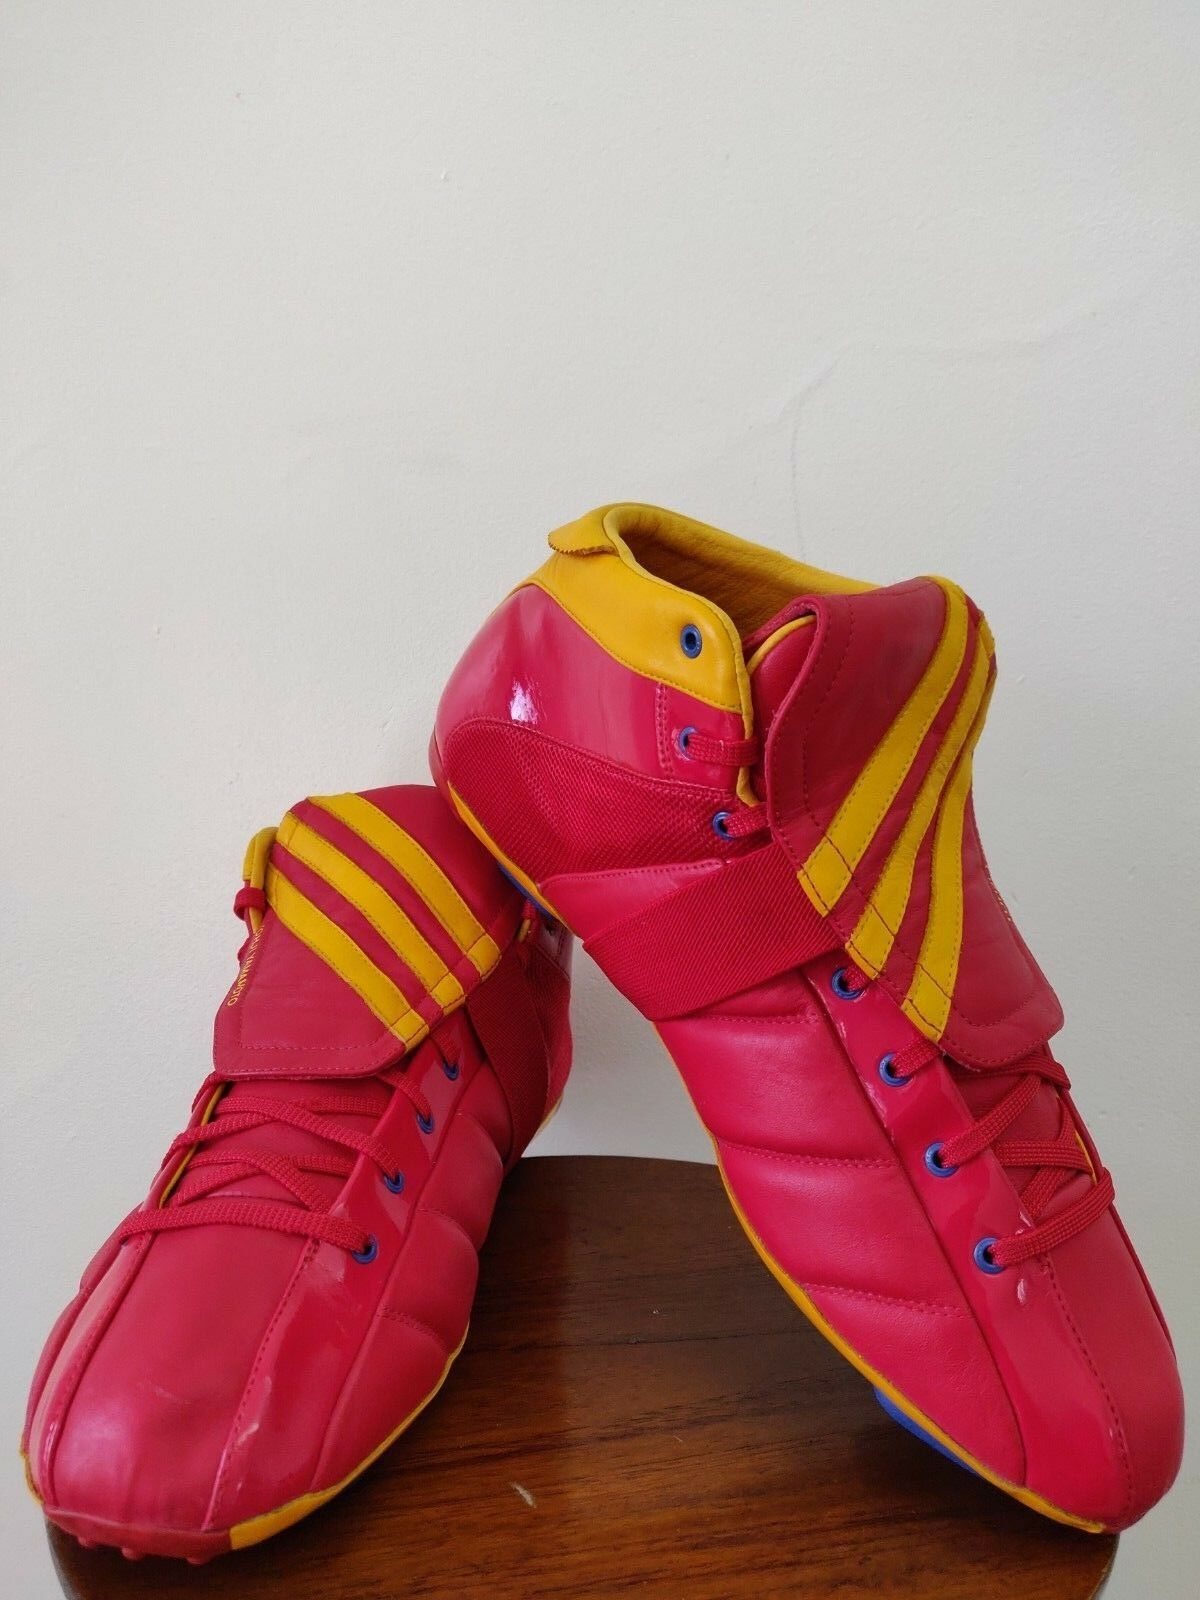 Men's Adidas Y-3 Yohji Yamamoto field mid excl soccer cleats red-yellow size 12